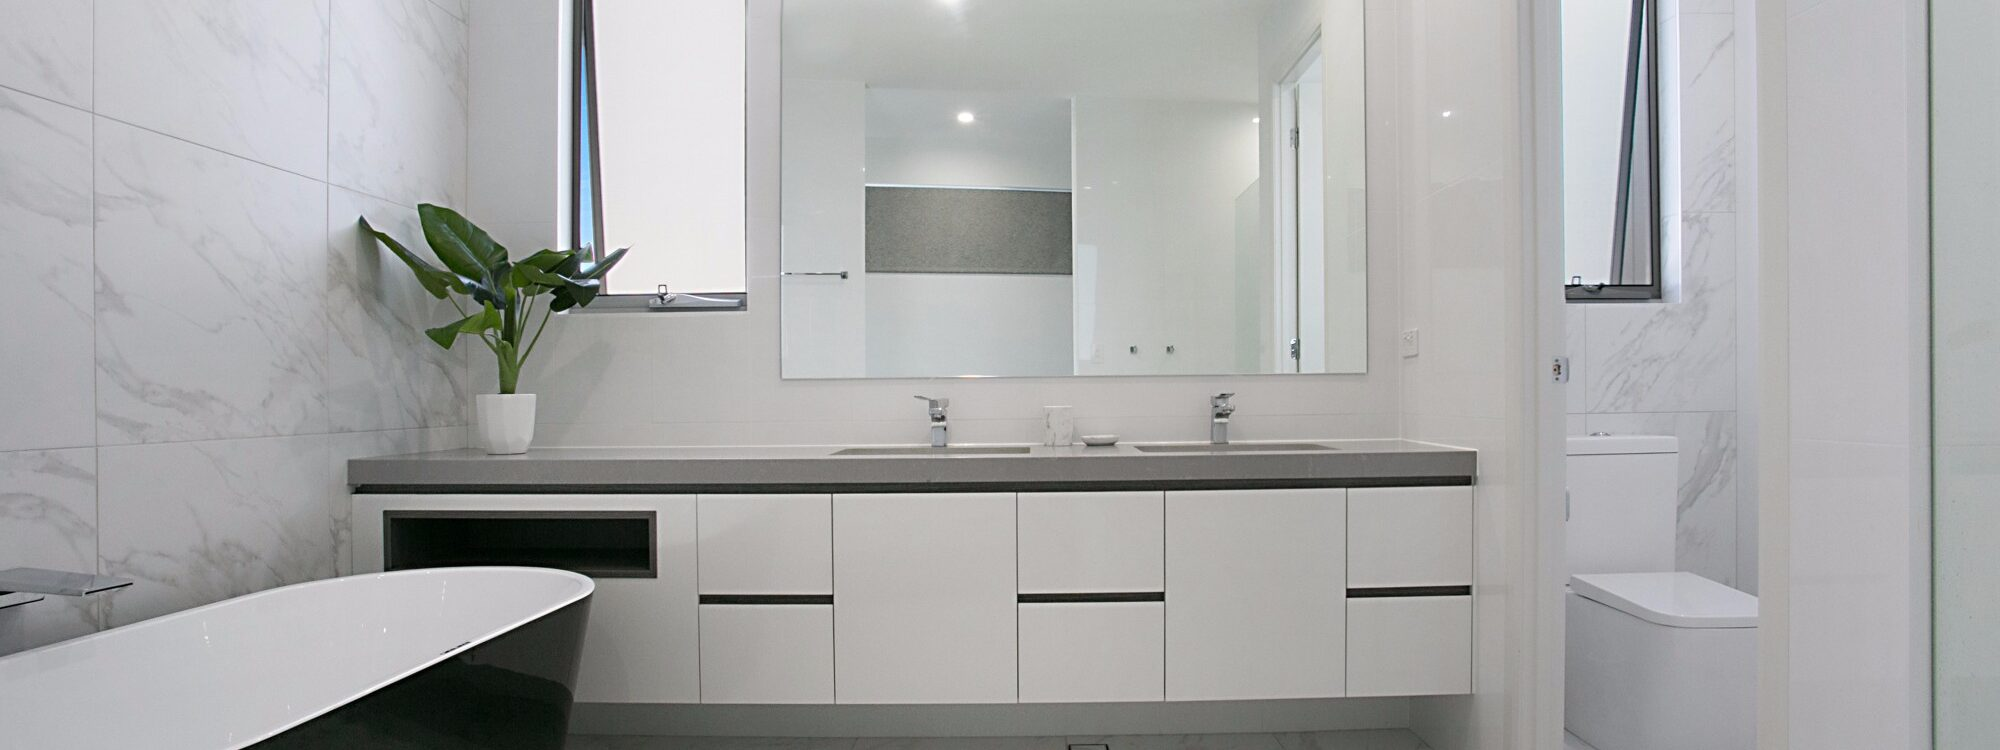 Pacific Breeze - Broadbeach - Bathroom 1